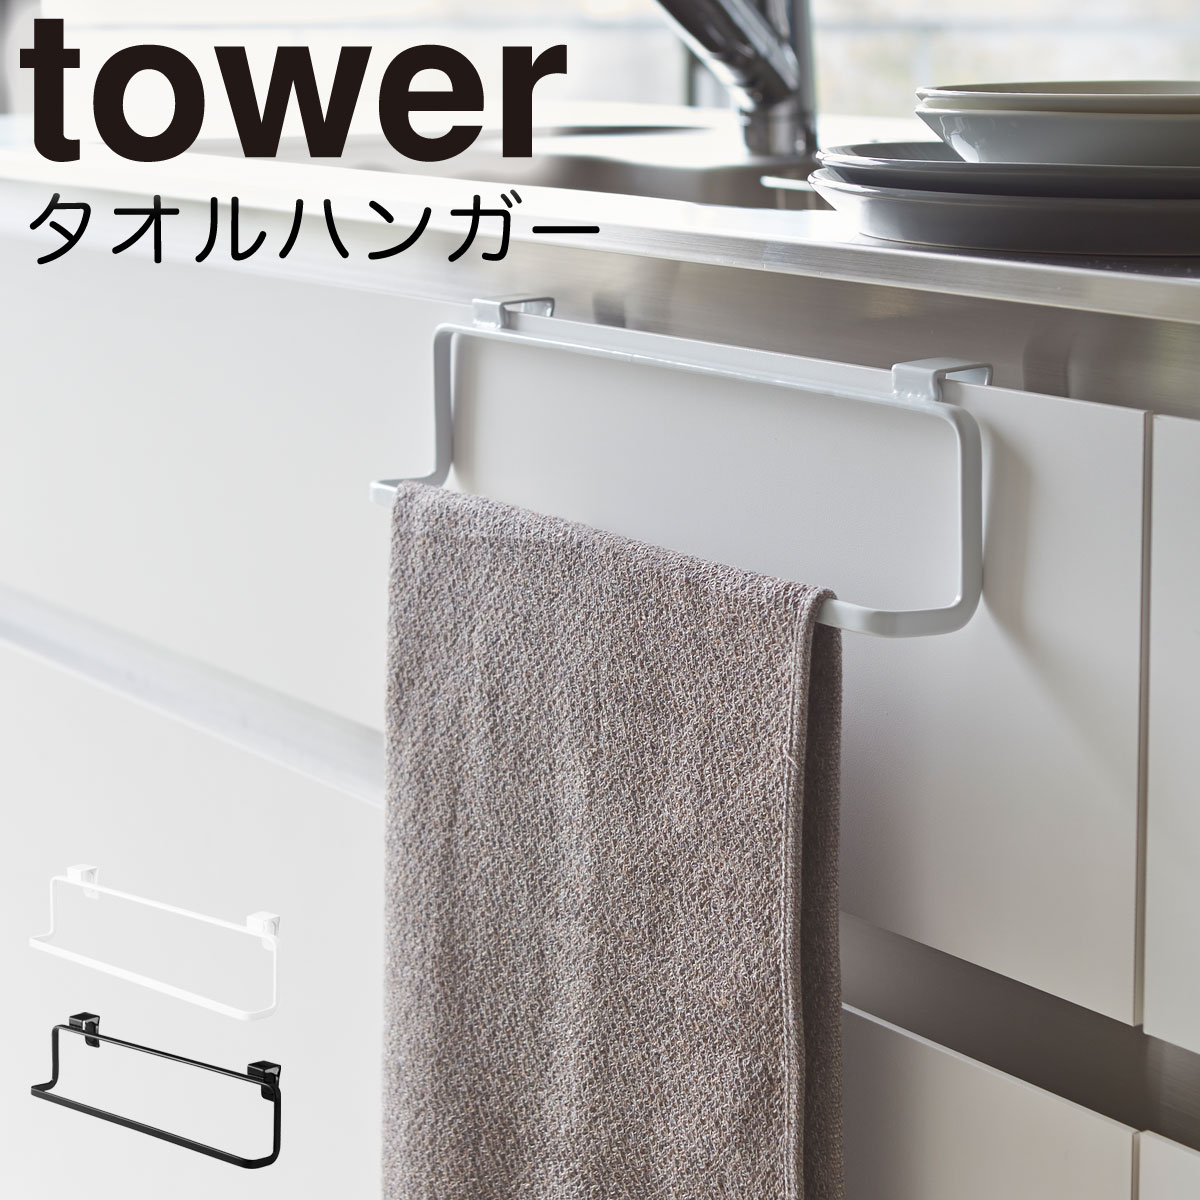 kitchen towel bars backsplash stick on tiles lighterya general store hanger iron tower wide gift present airing bar fashion of the man